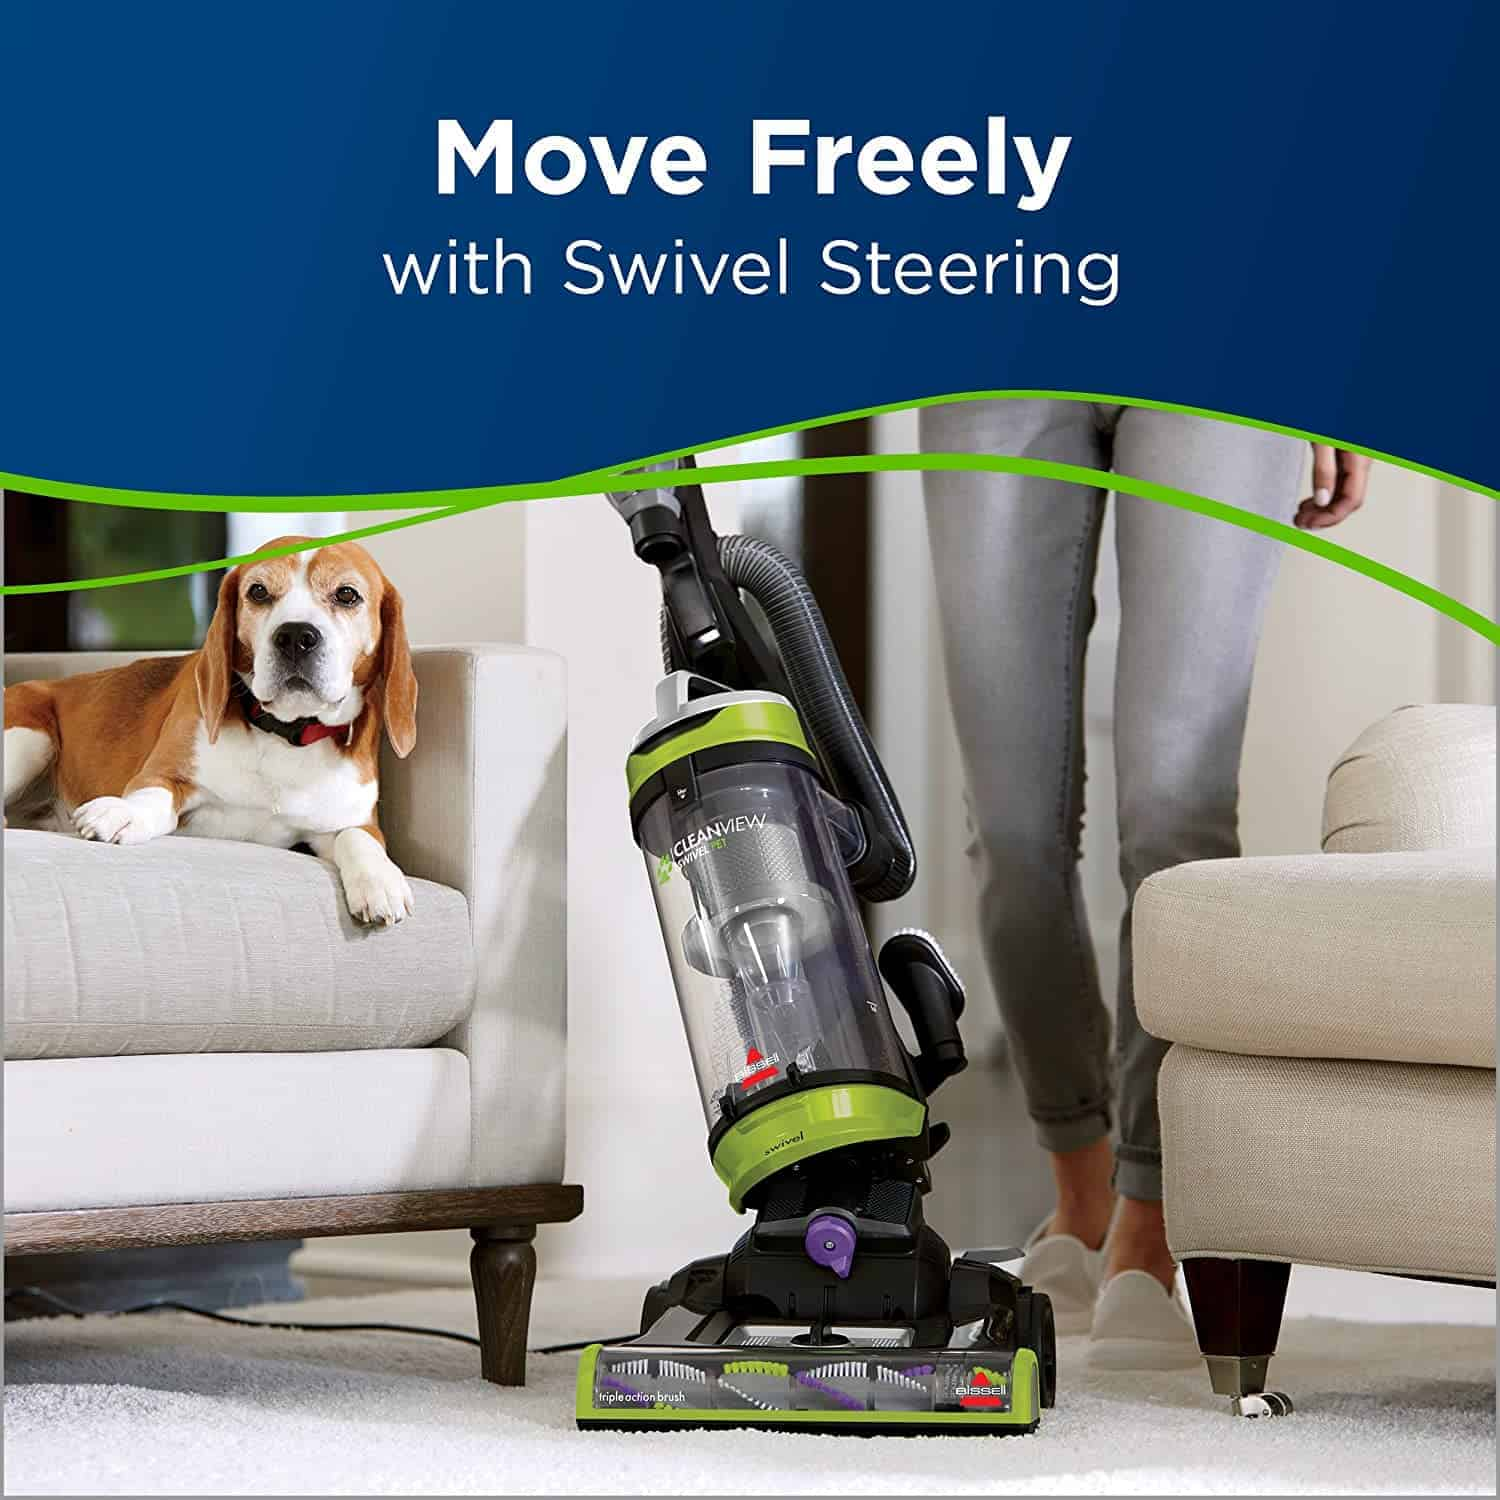 Best upright vacuum for pet hair: Bissell 2252 Swivel